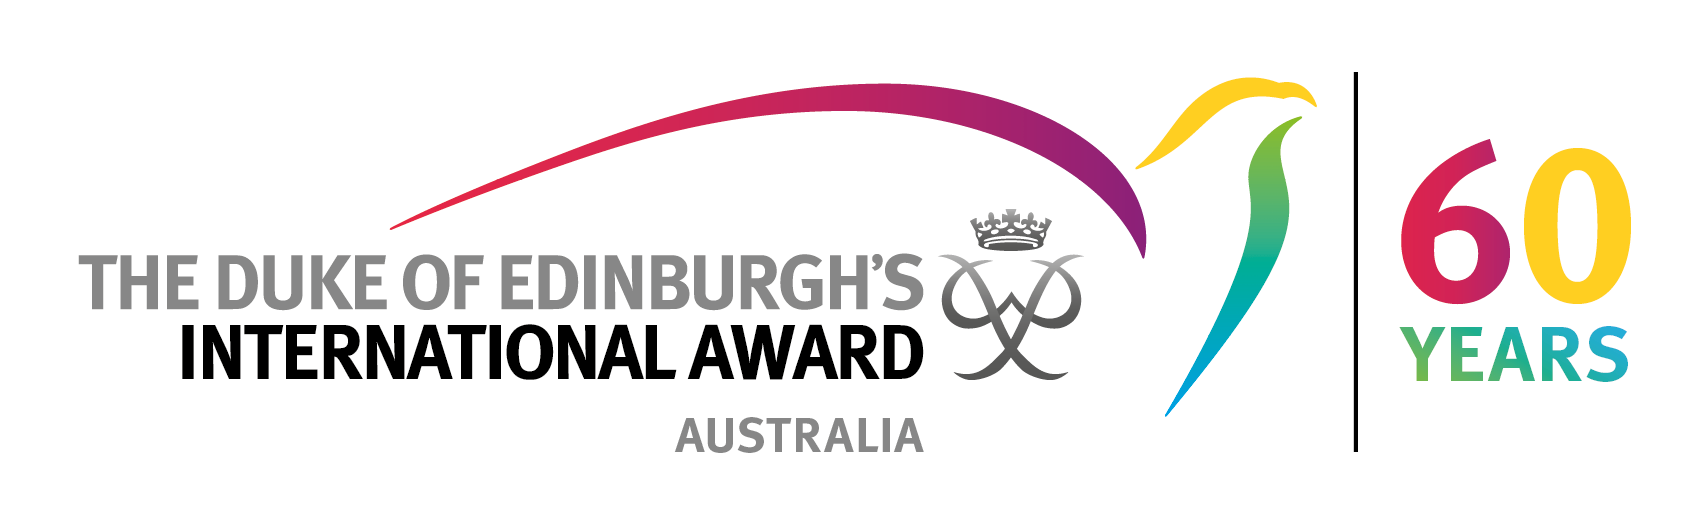 The Duke of Edinburgh's International Award - Australia